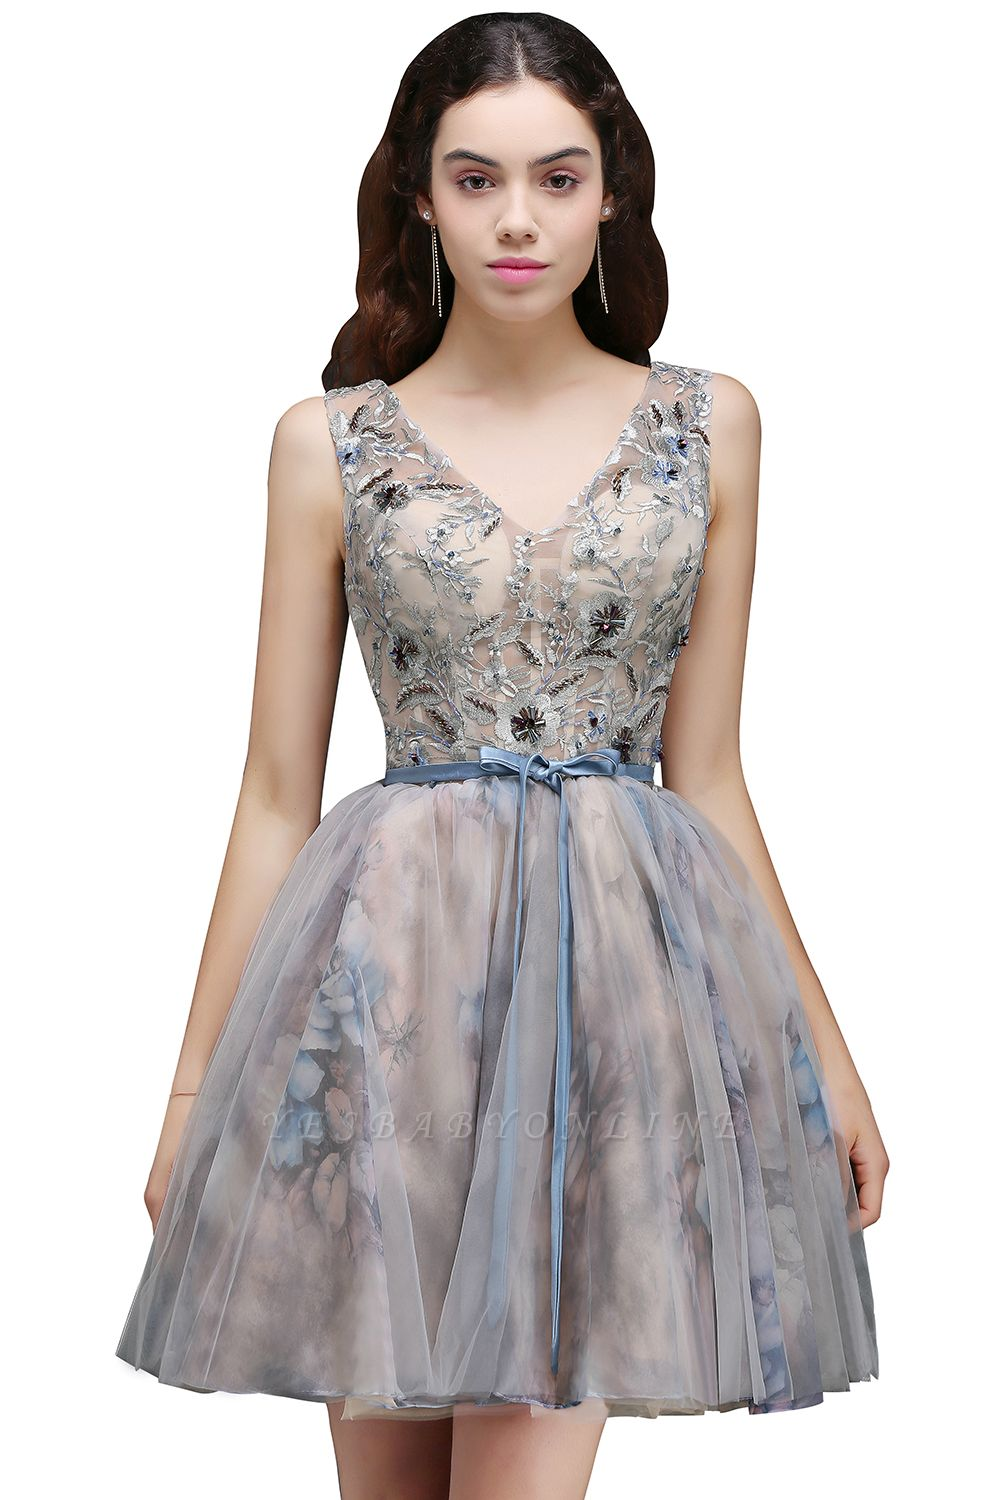 A-line Short Cute Homecoming Dress With Appliques